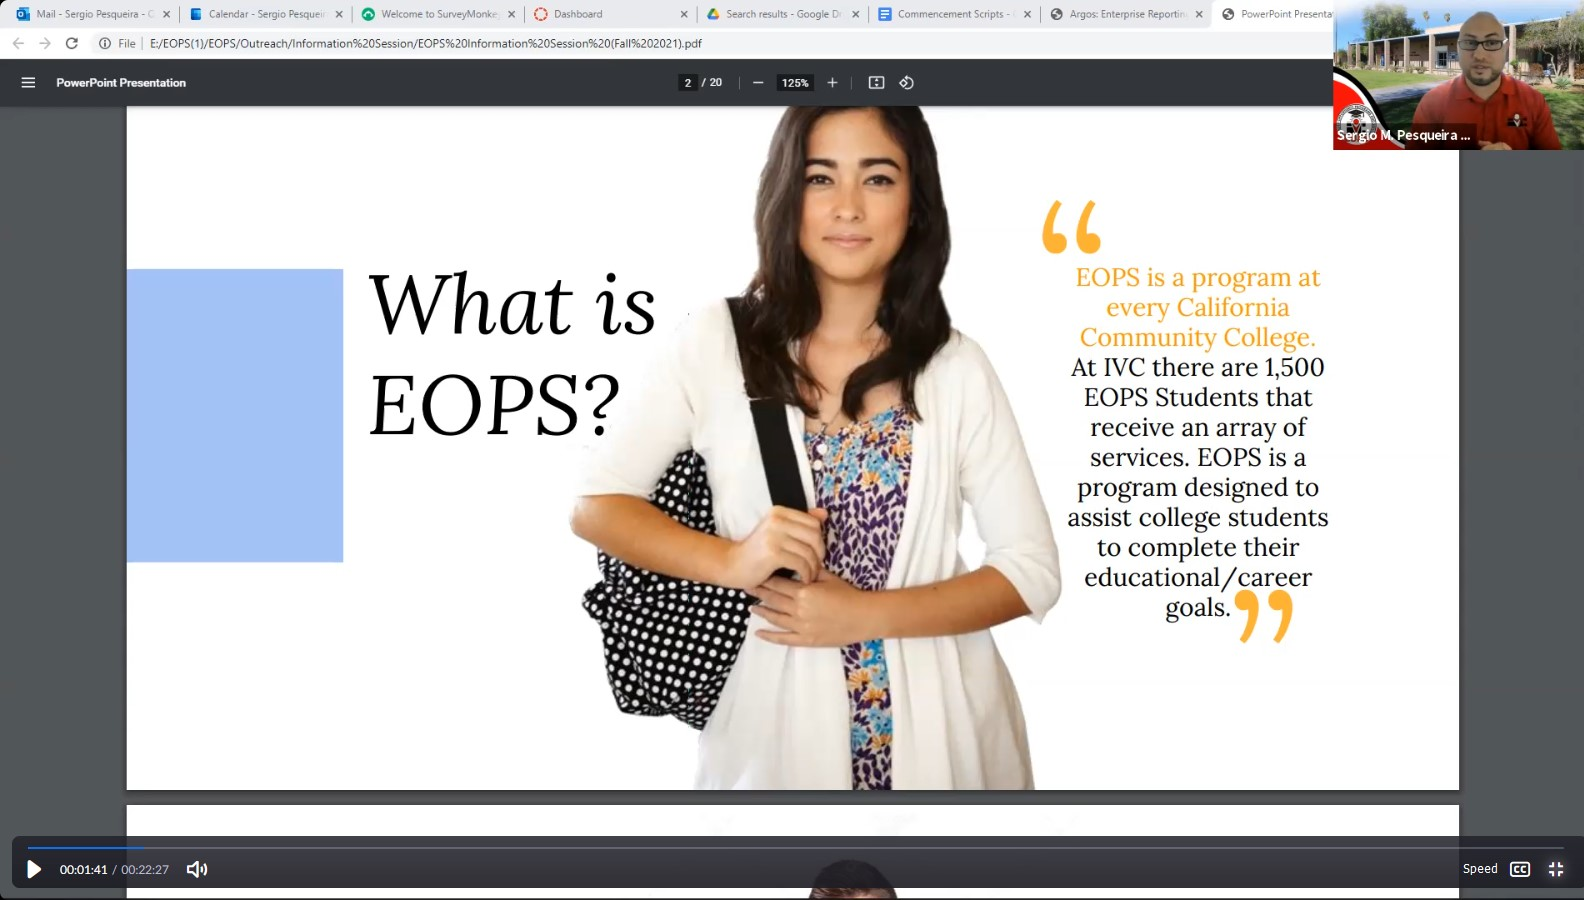 eops video intro